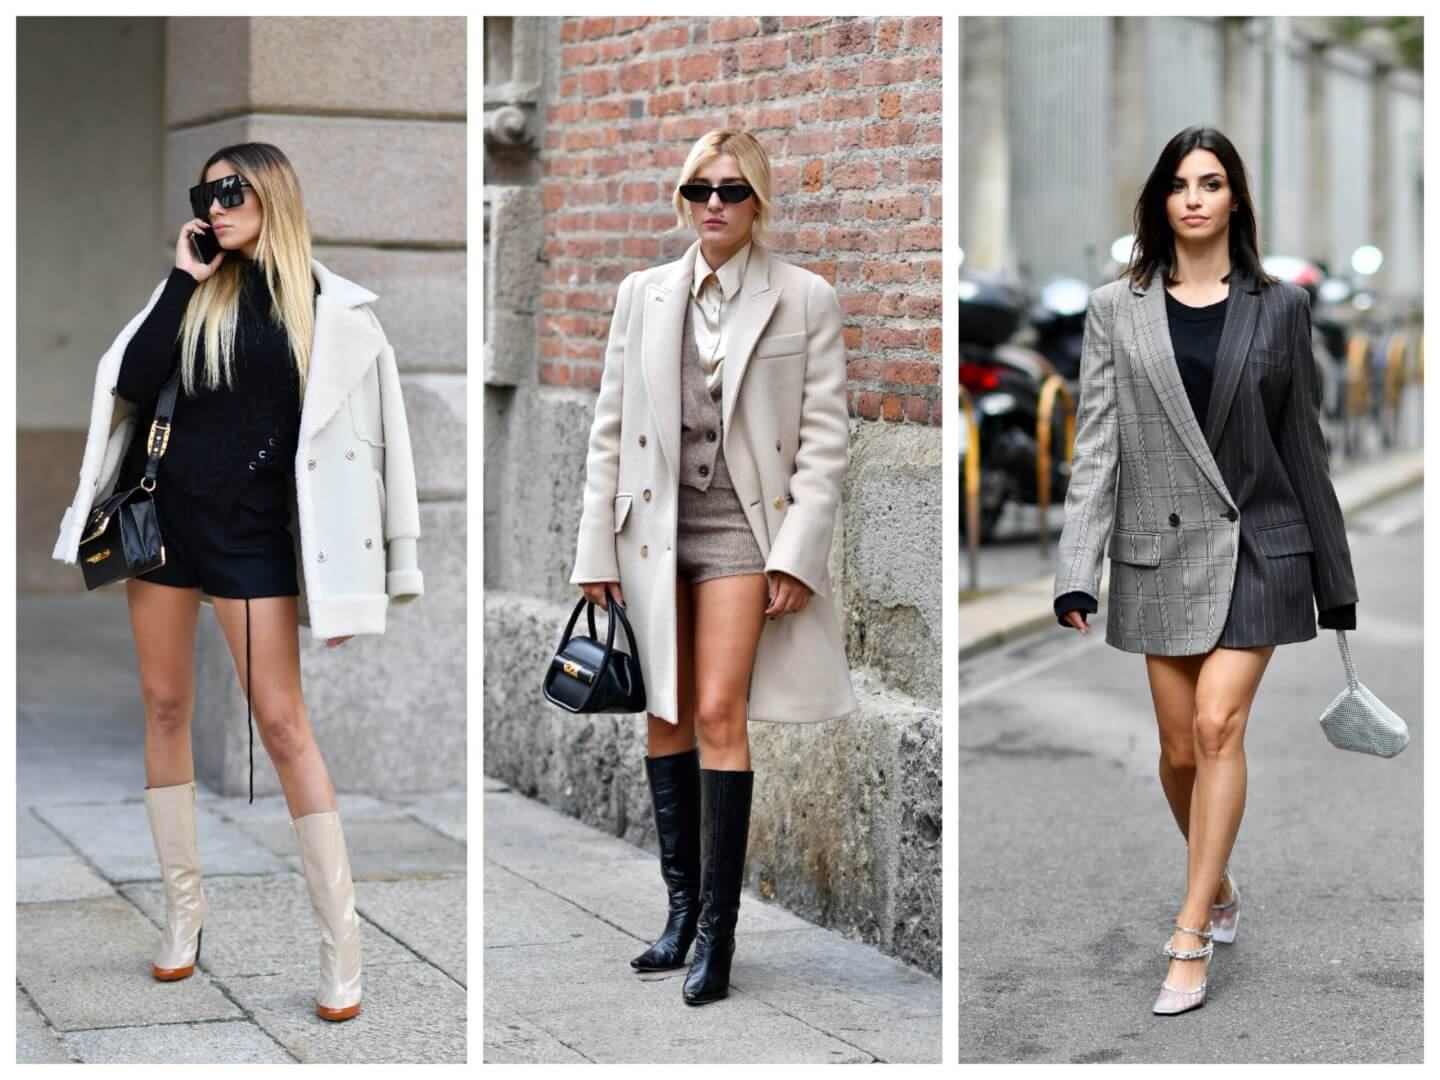 10 Top Fashion Trends for 2021